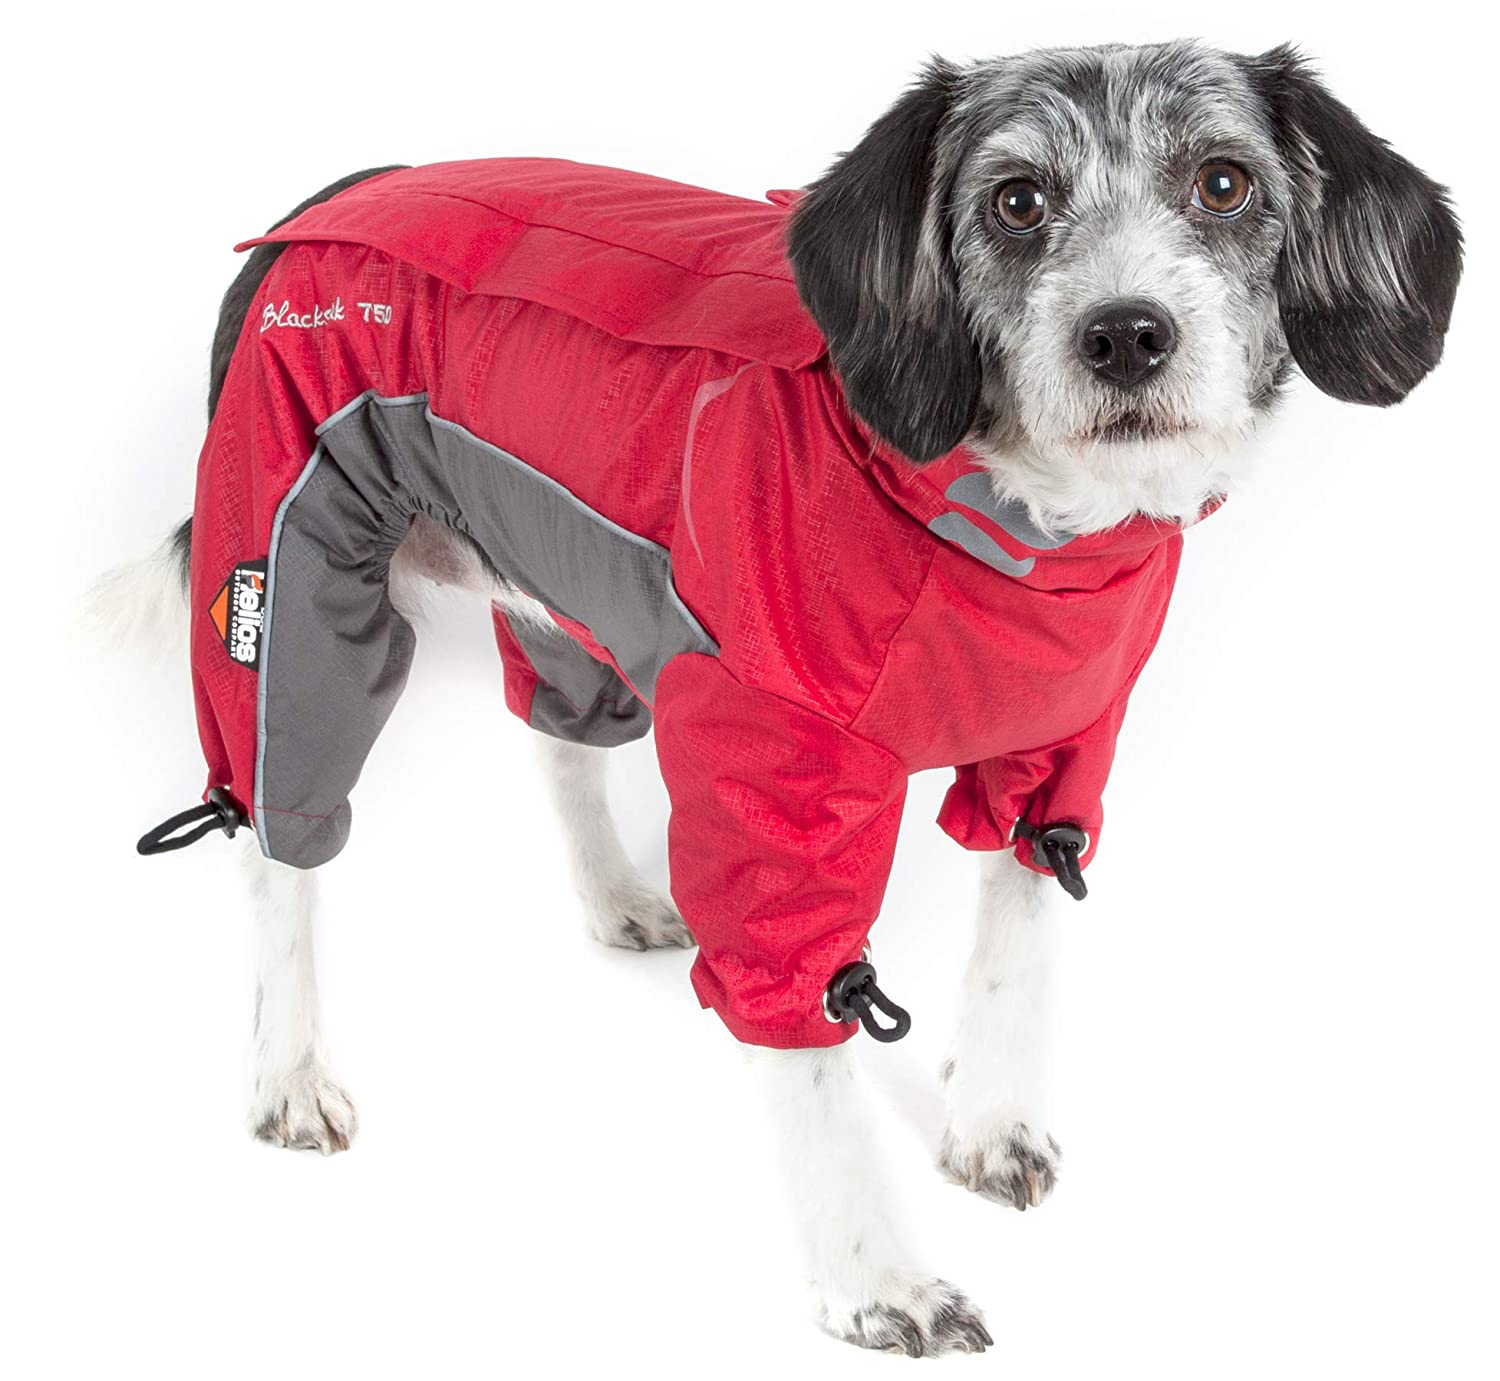 Cola Red X-SMALL Cola Red X-SMALL DOGHELIOS 'Blizzard' Full-Bodied Comfort-Fitted Adjustable and 3M Reflective Winter Insulated Pet Dog Coat Jacket w Blackshark Technology, X-Small, Cola Red